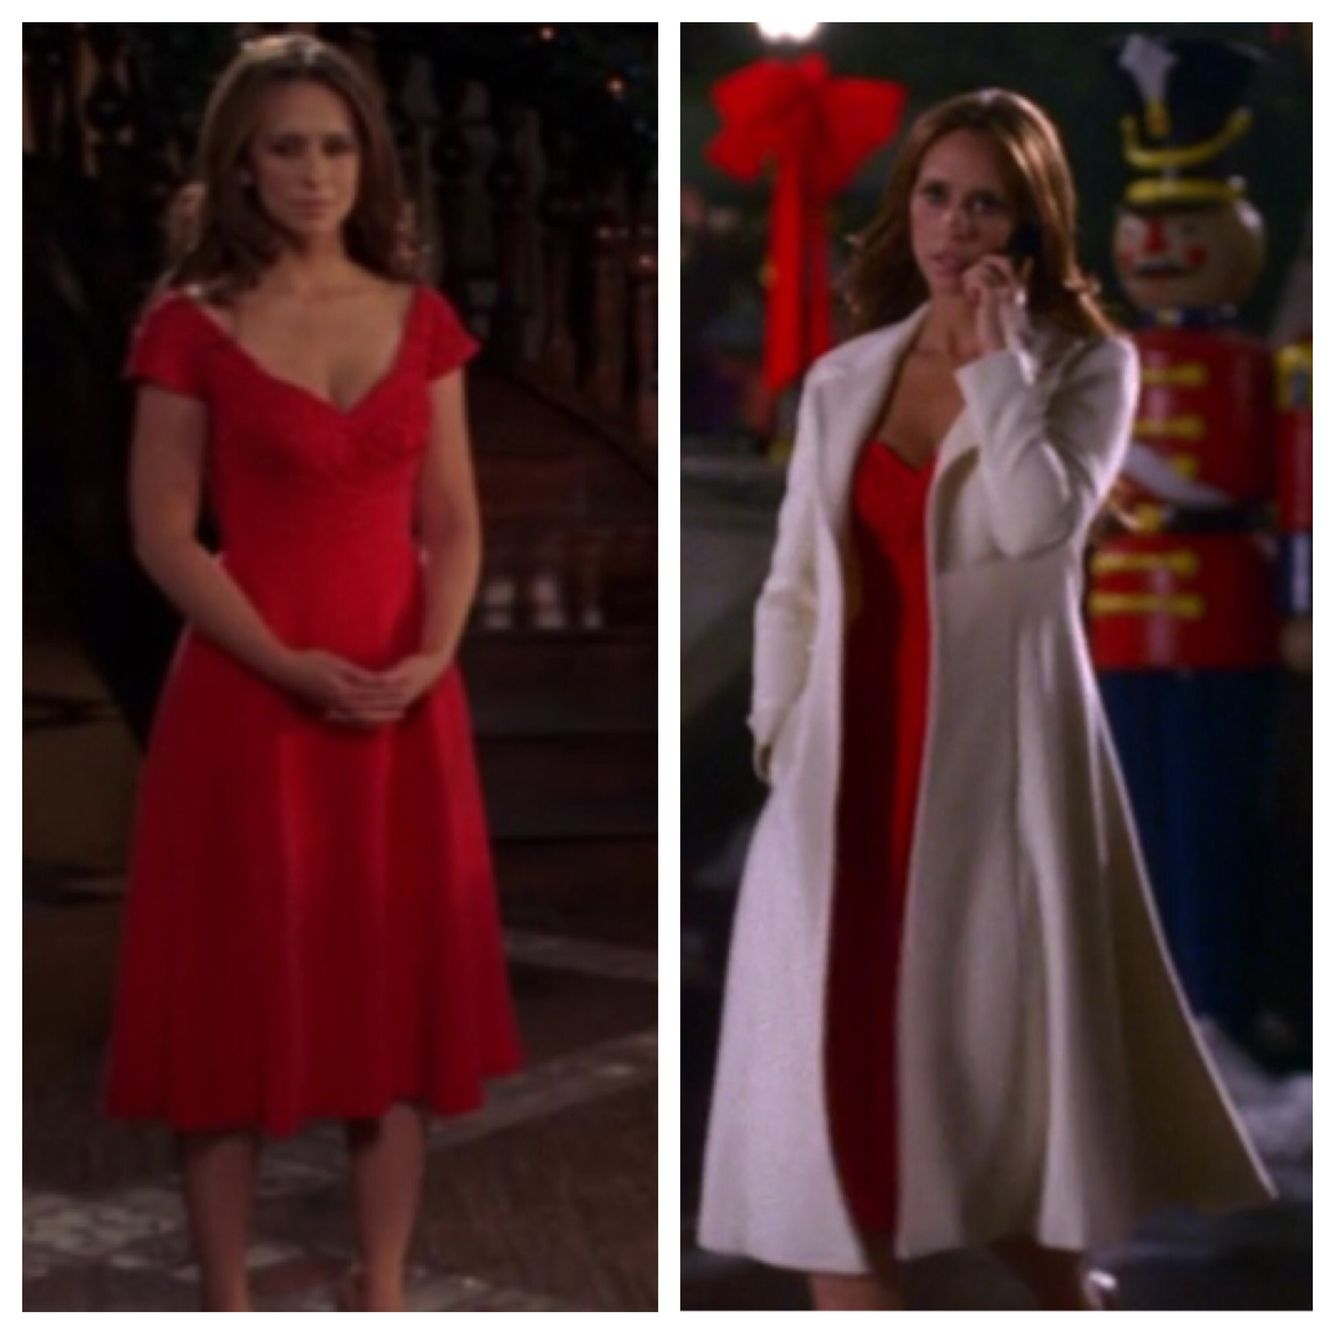 Sexy ghost whisperer episodes